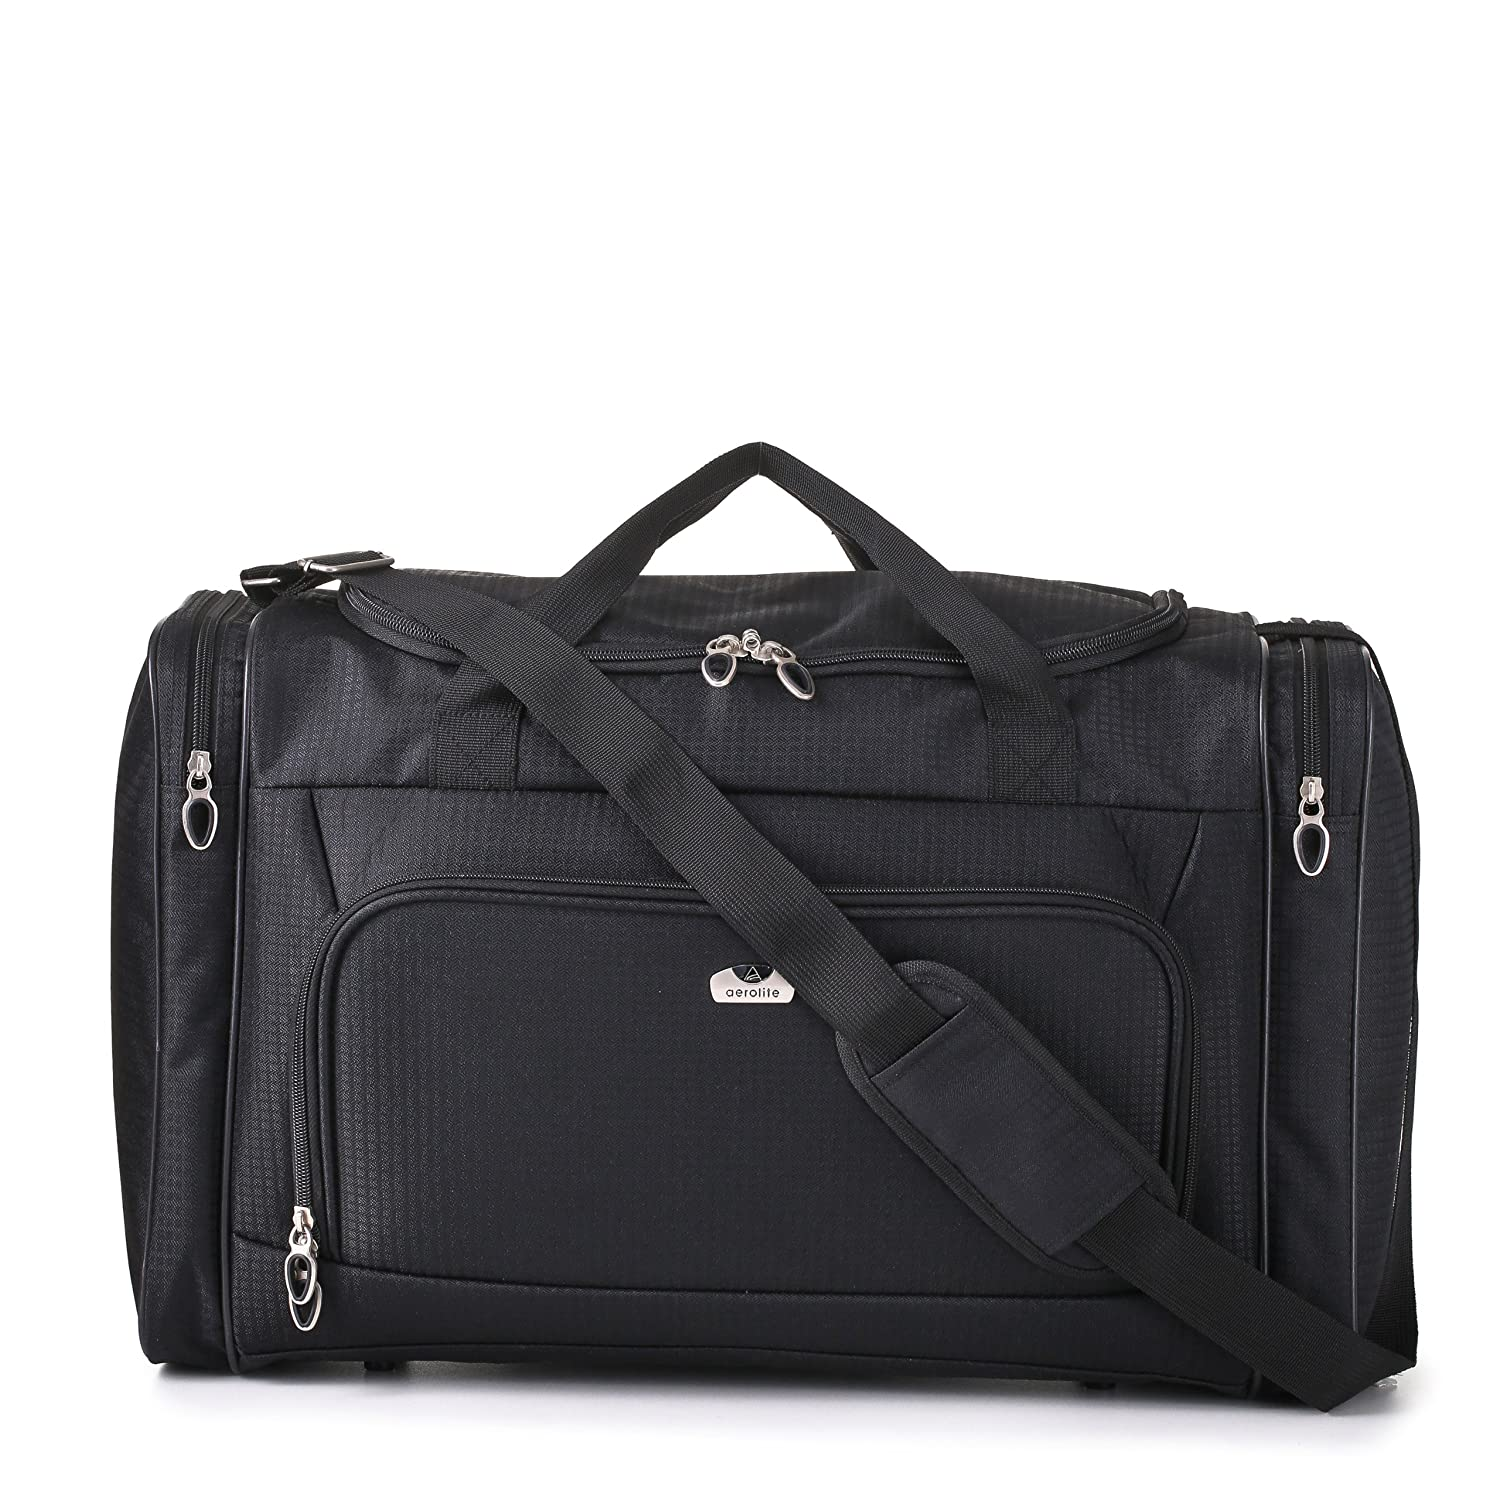 286d4df7b1 Carry On Sized Lightweight Small Luggage Cabin Holdall Duffel Bag - 21.1